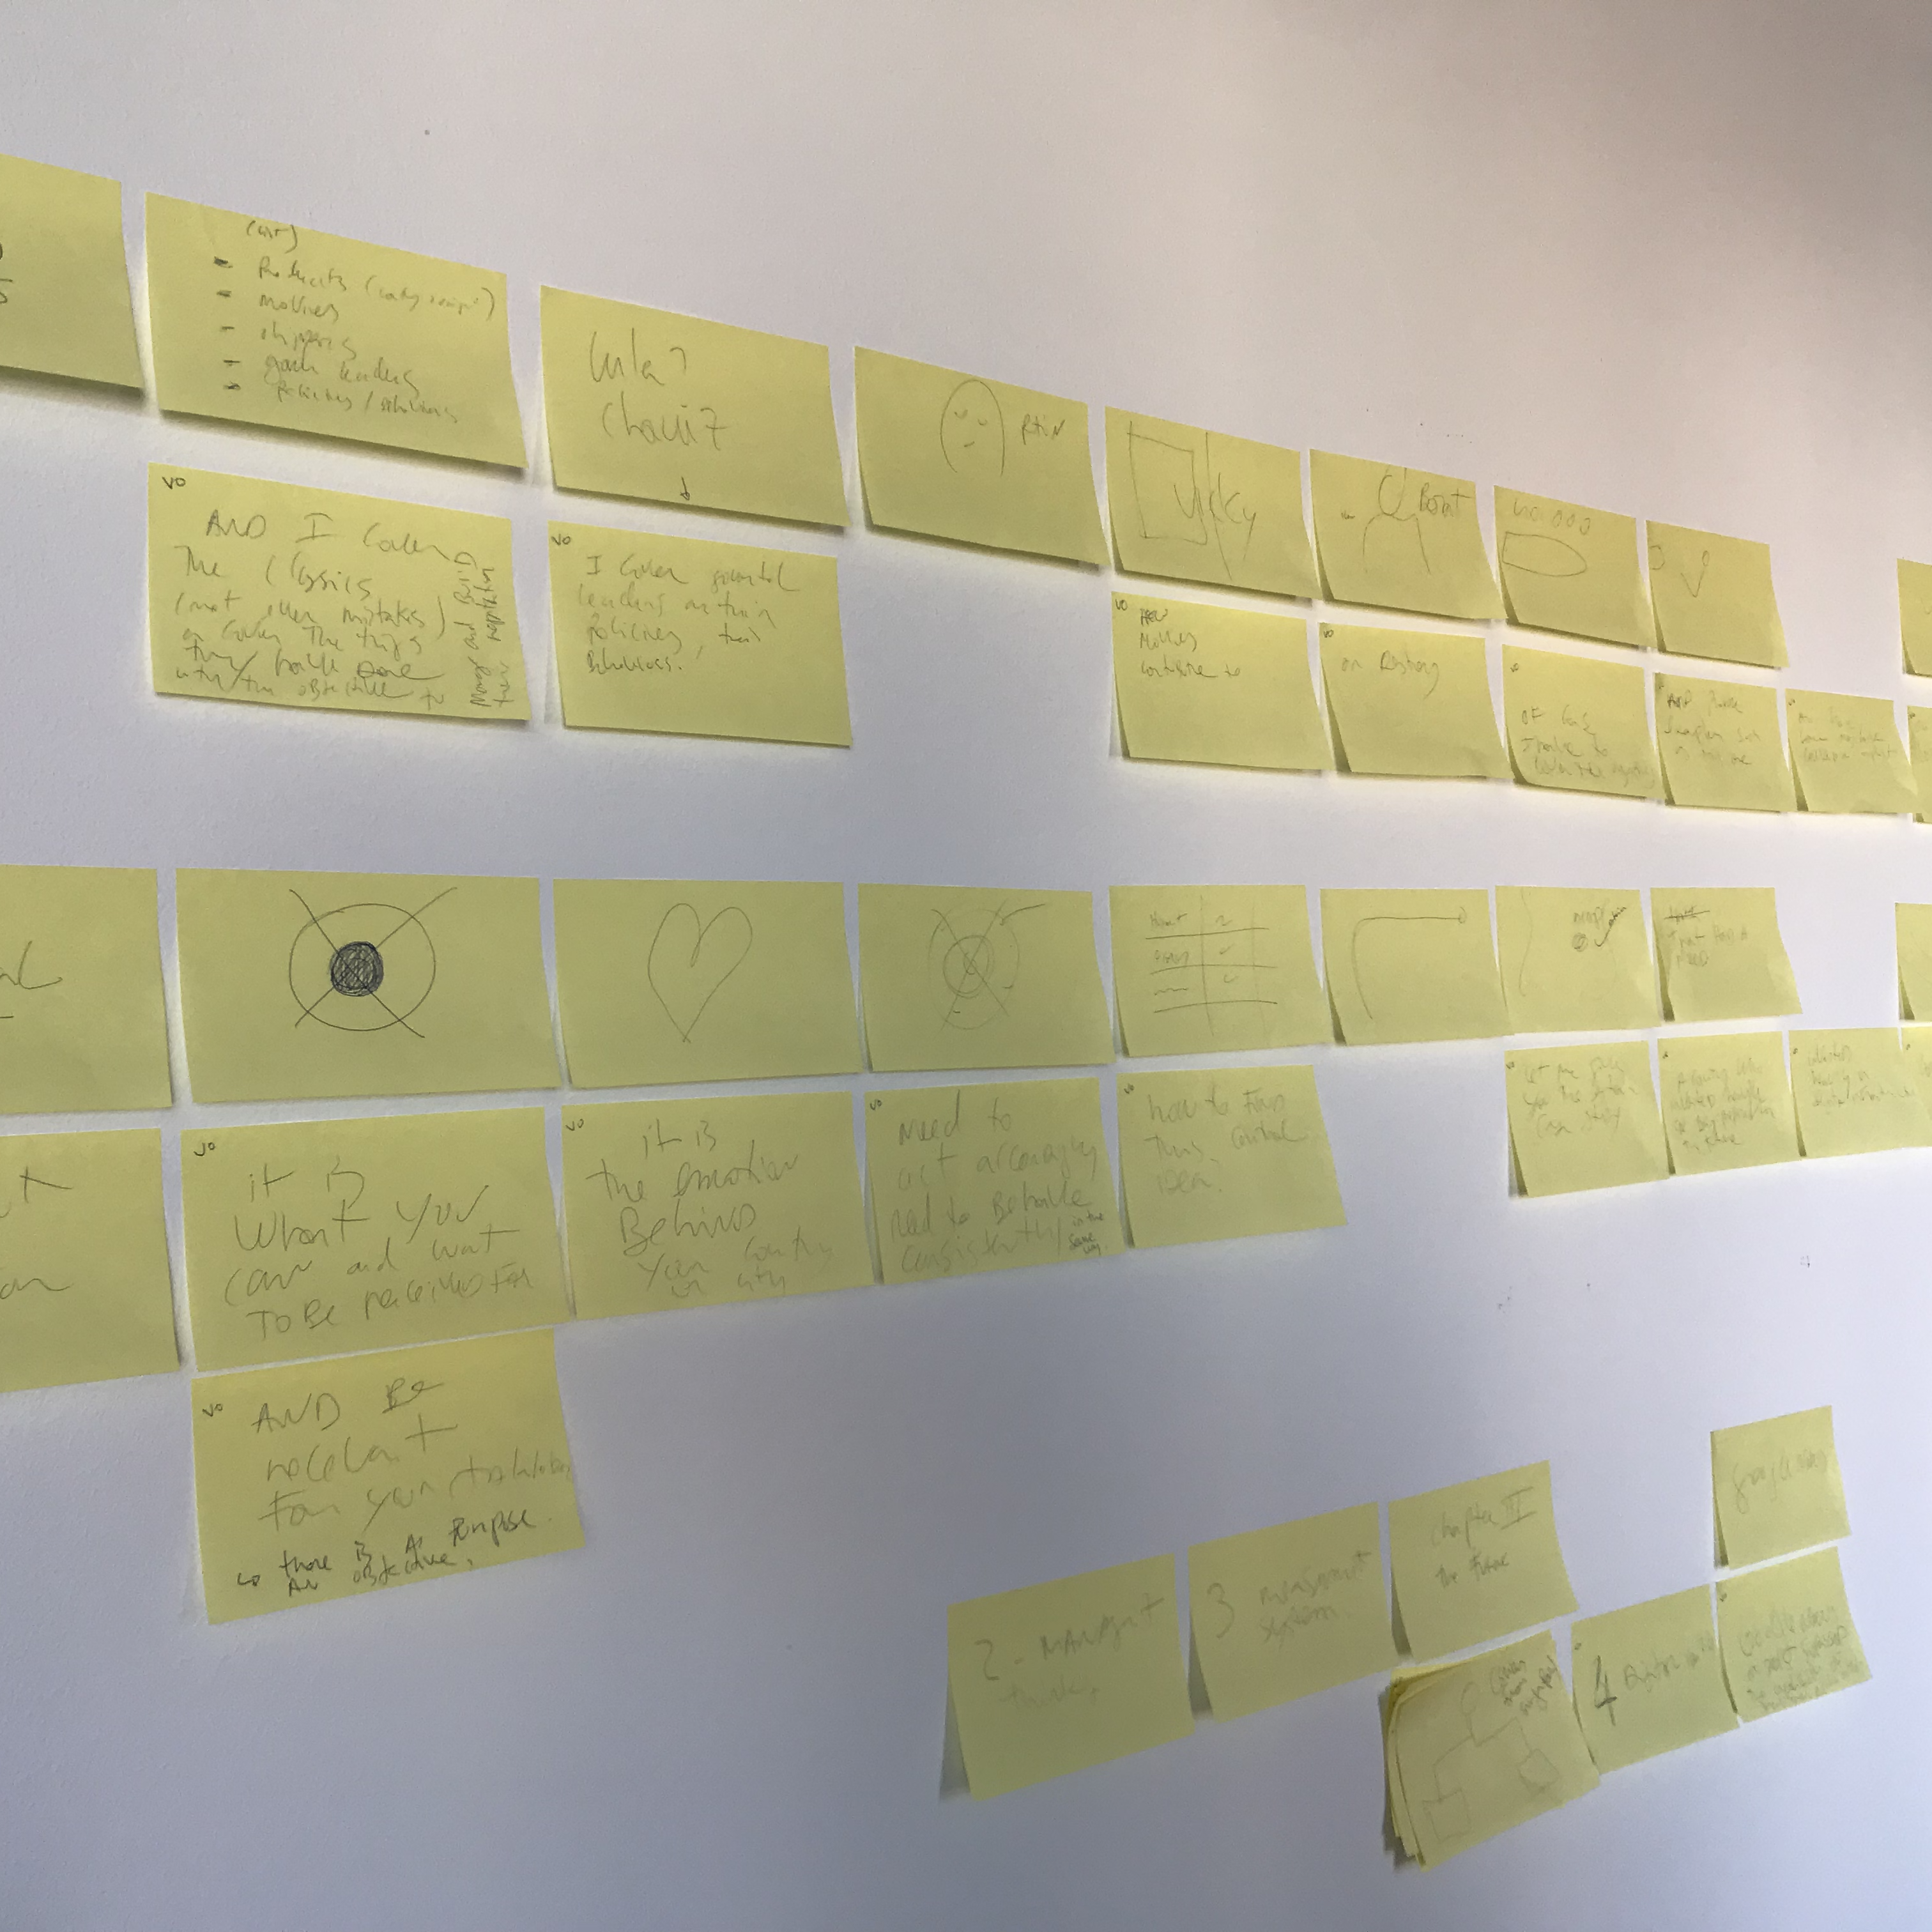 D2 - Analytics research process with yellow post-its on the wall